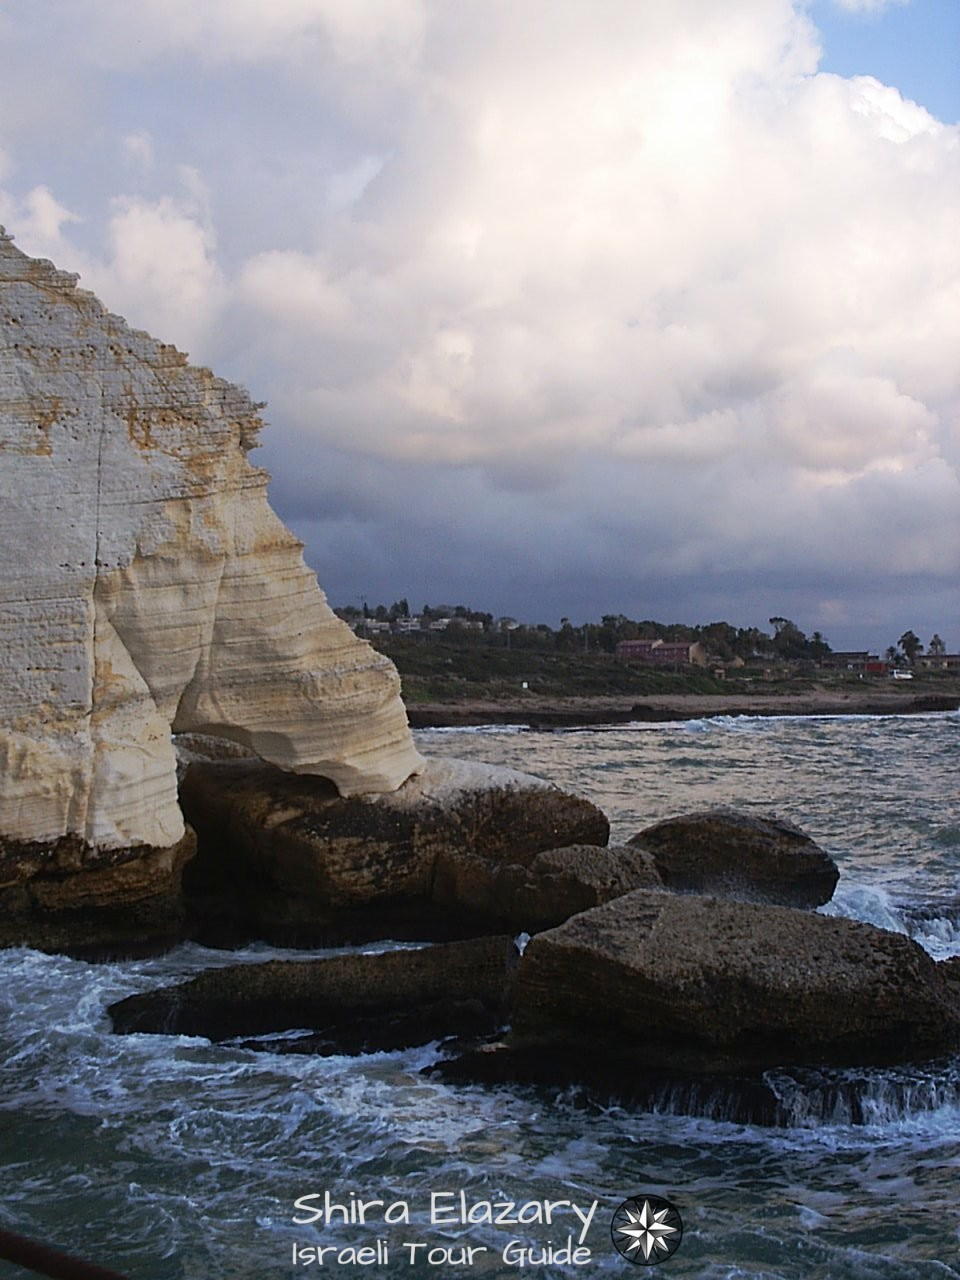 The Elephant's Foot formation at Rosh Hanikra